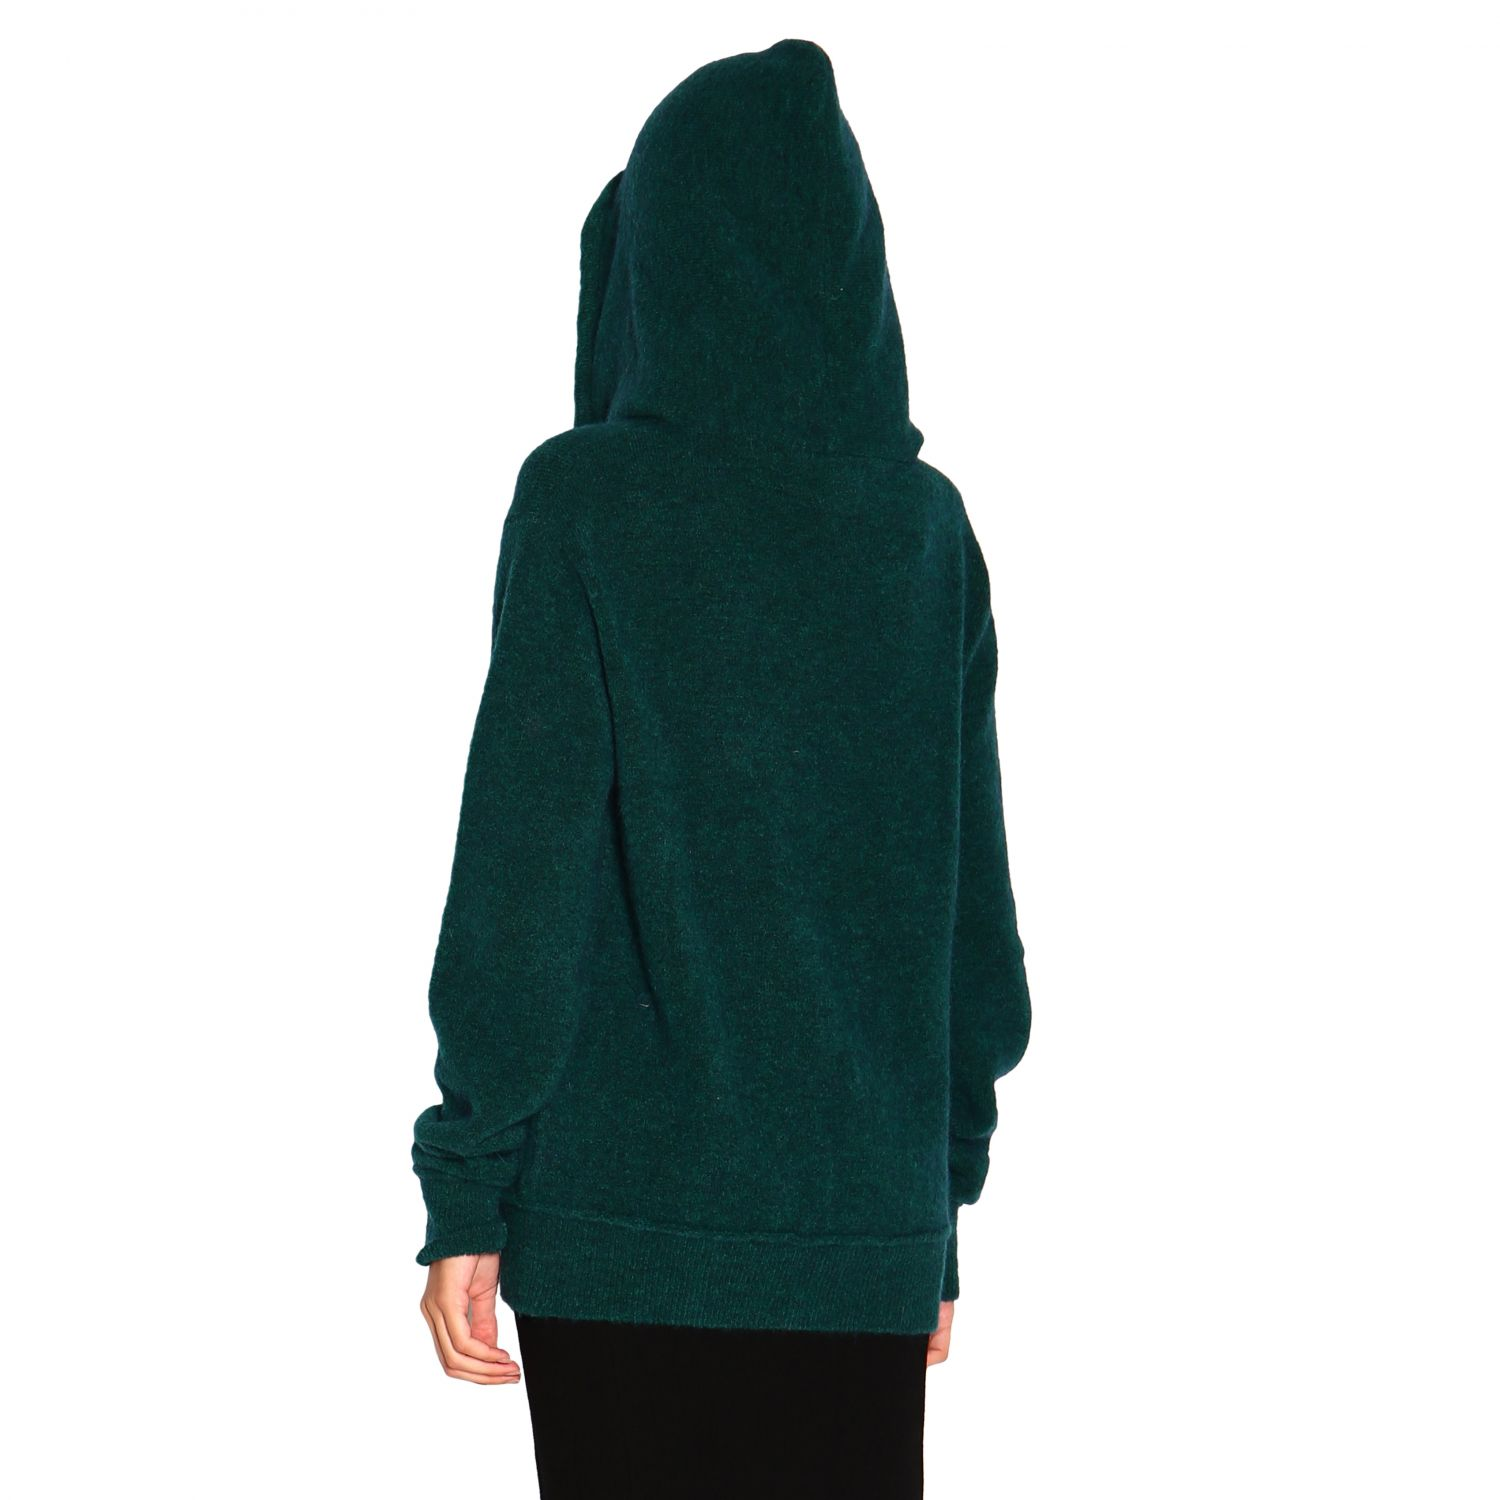 Sweatshirt women Marco Rambaldi green 3